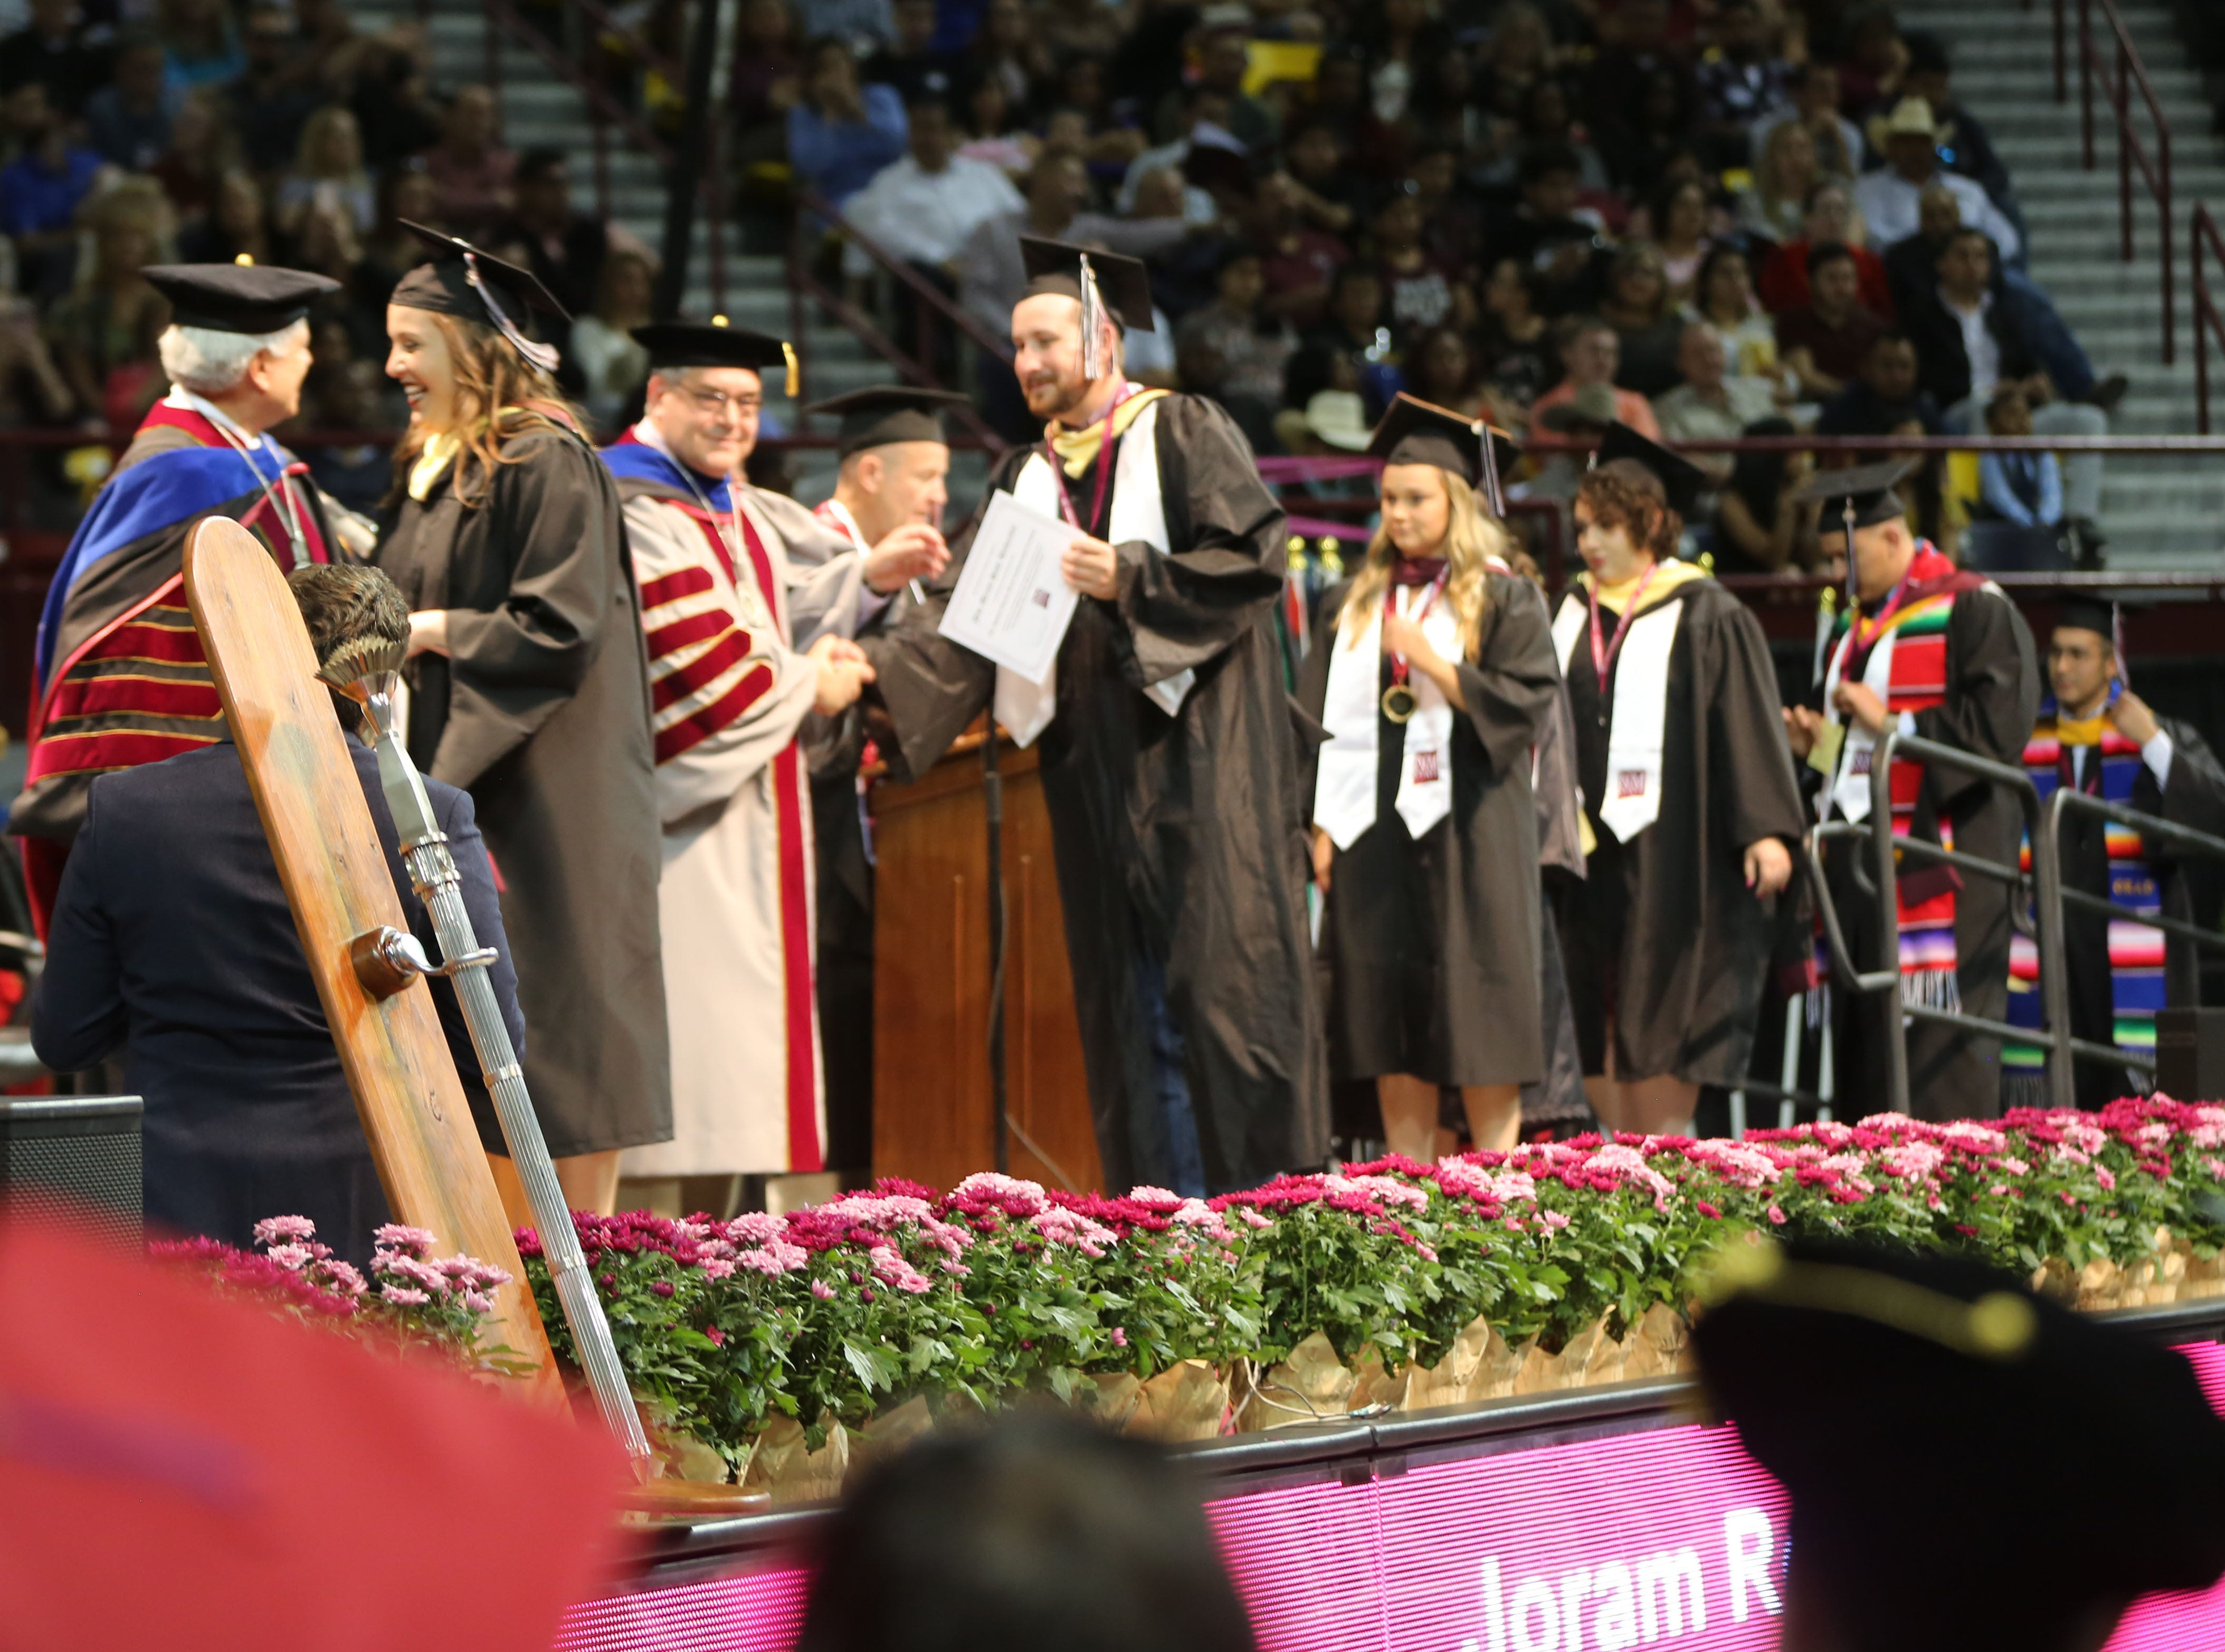 A total of 1,460 students earned their bachelor's degree this year at New Mexico State University.